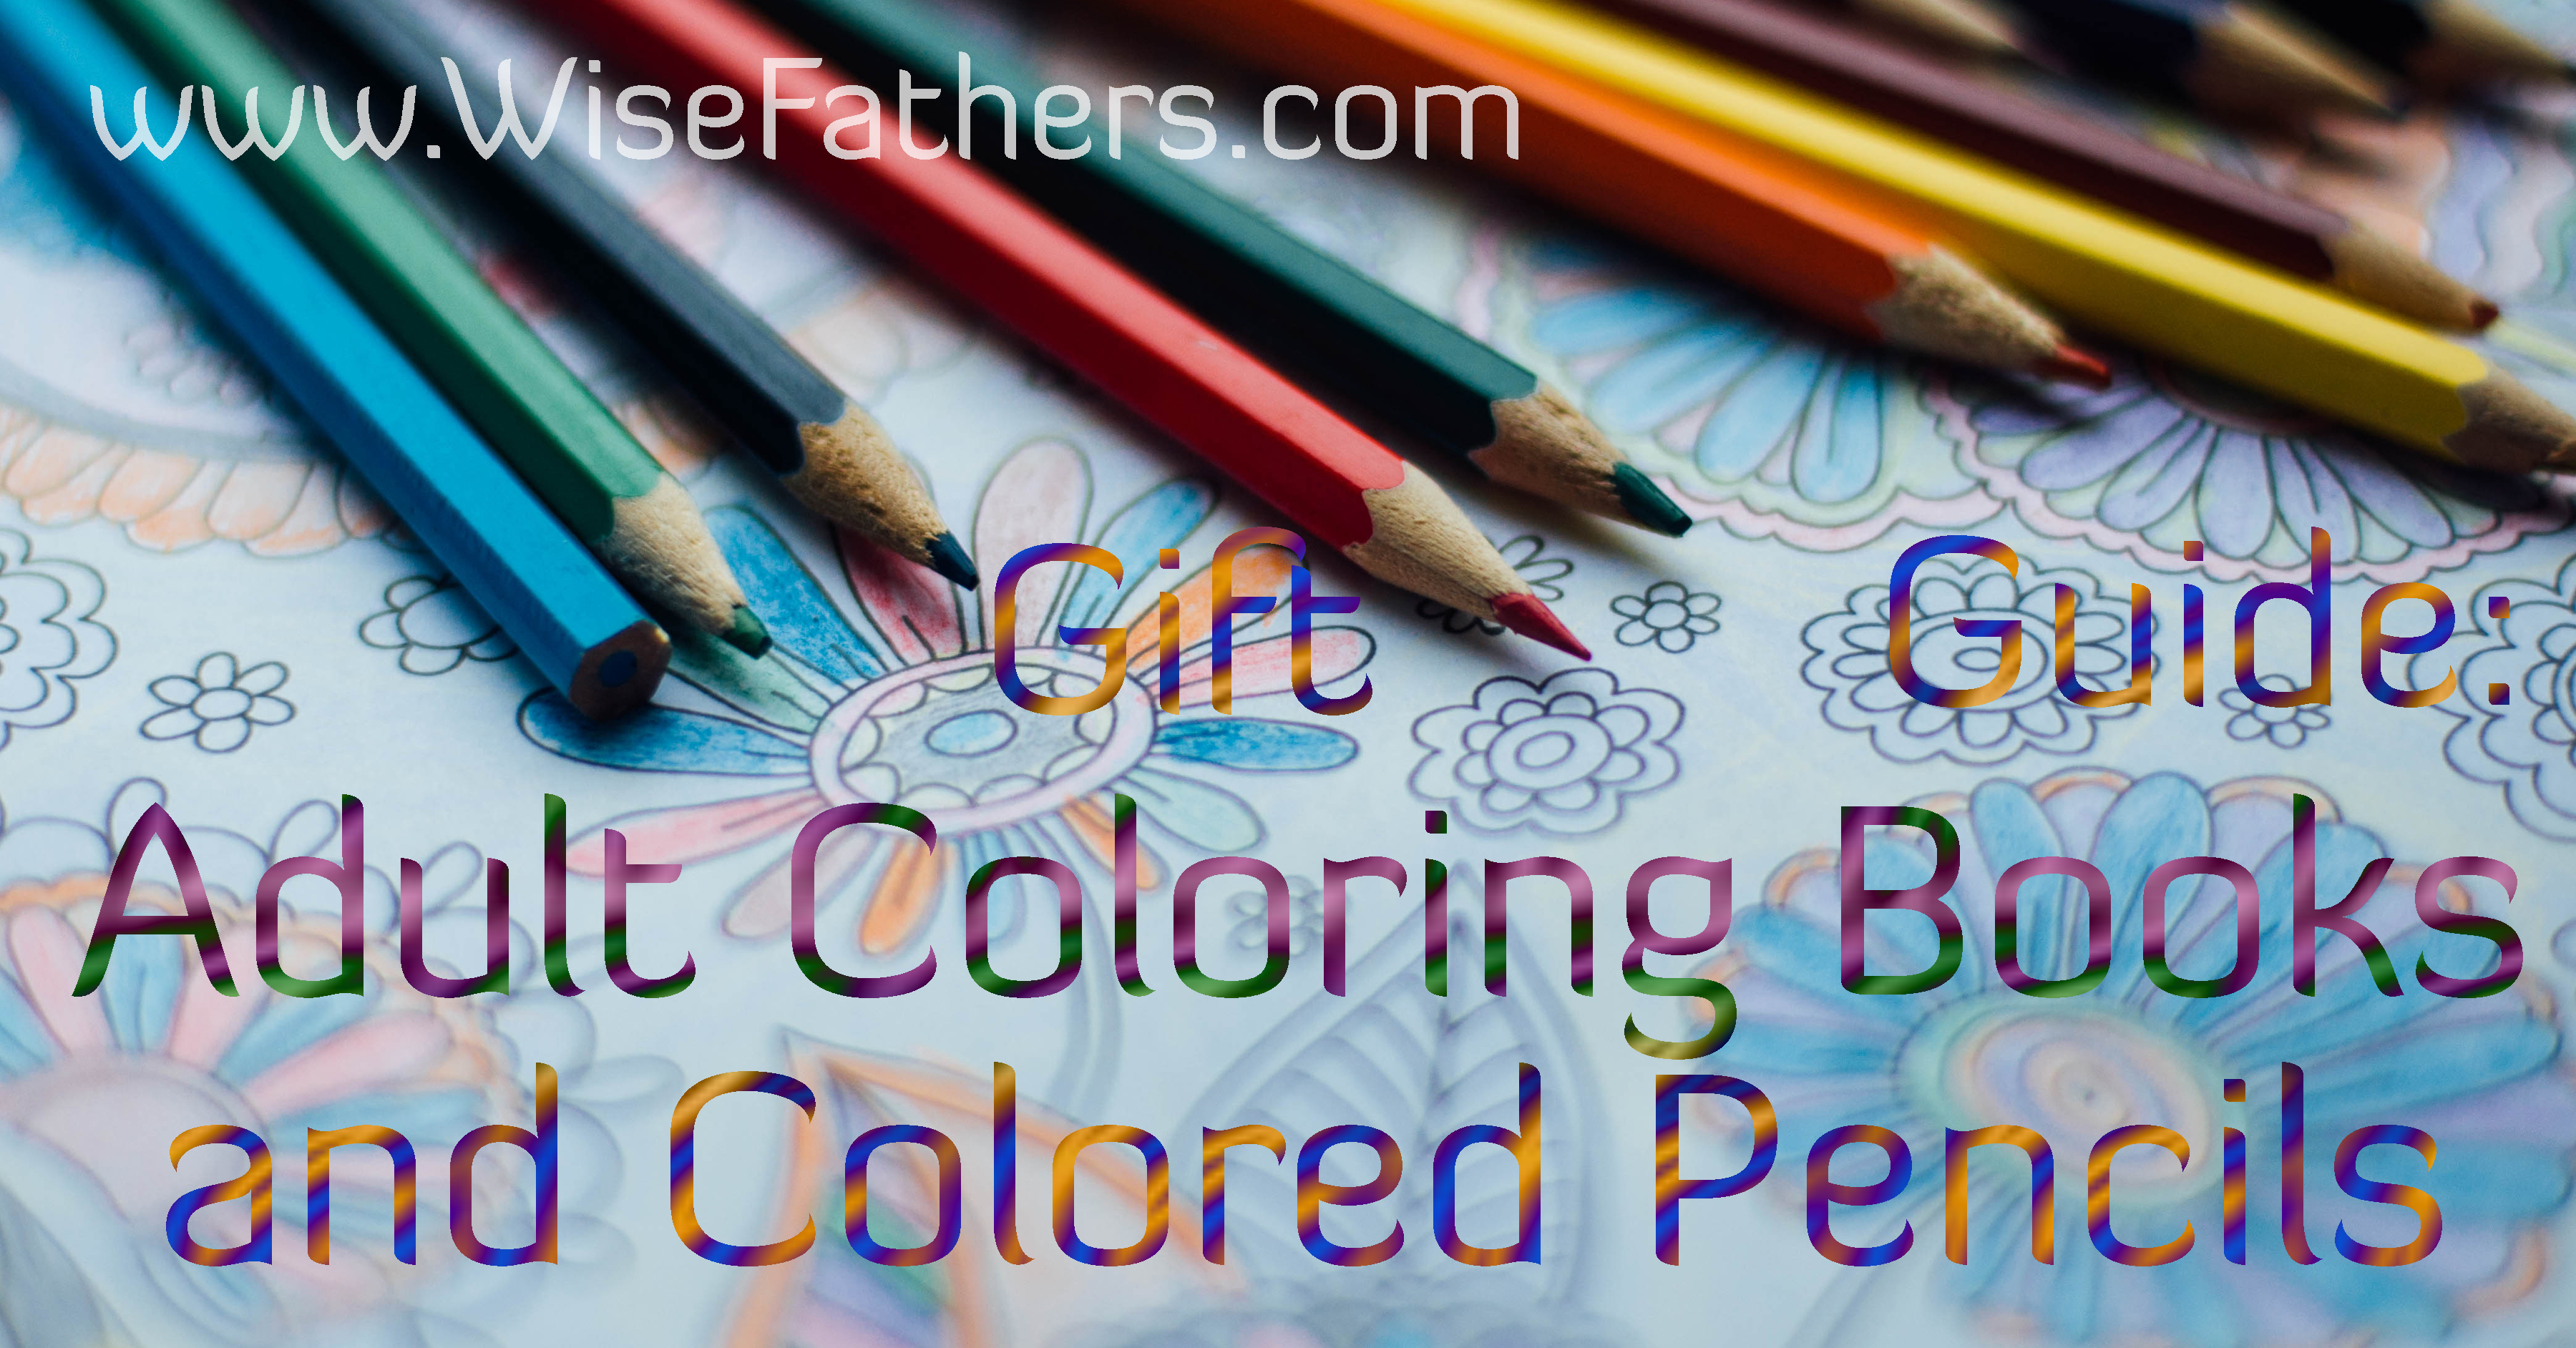 Gift Guide: Adult Coloring Books and Colored Pencils